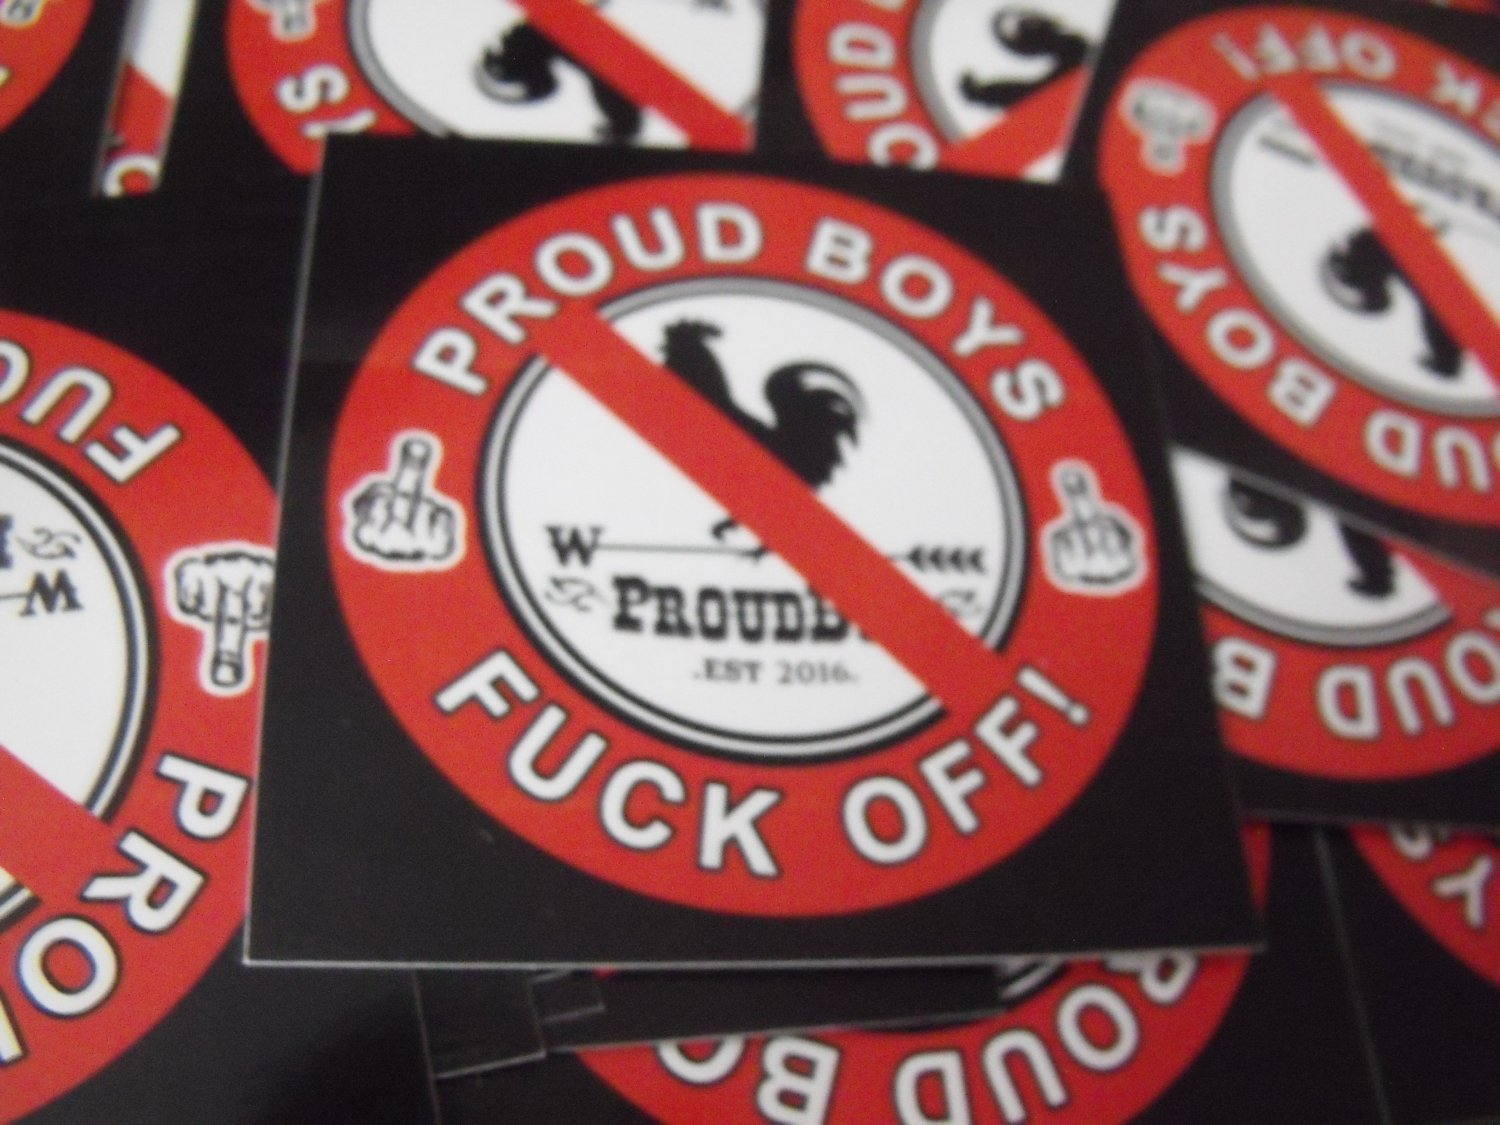 "300 PROUD BOYS FUCK OFF 2.5"" x 2.5"" stickers"